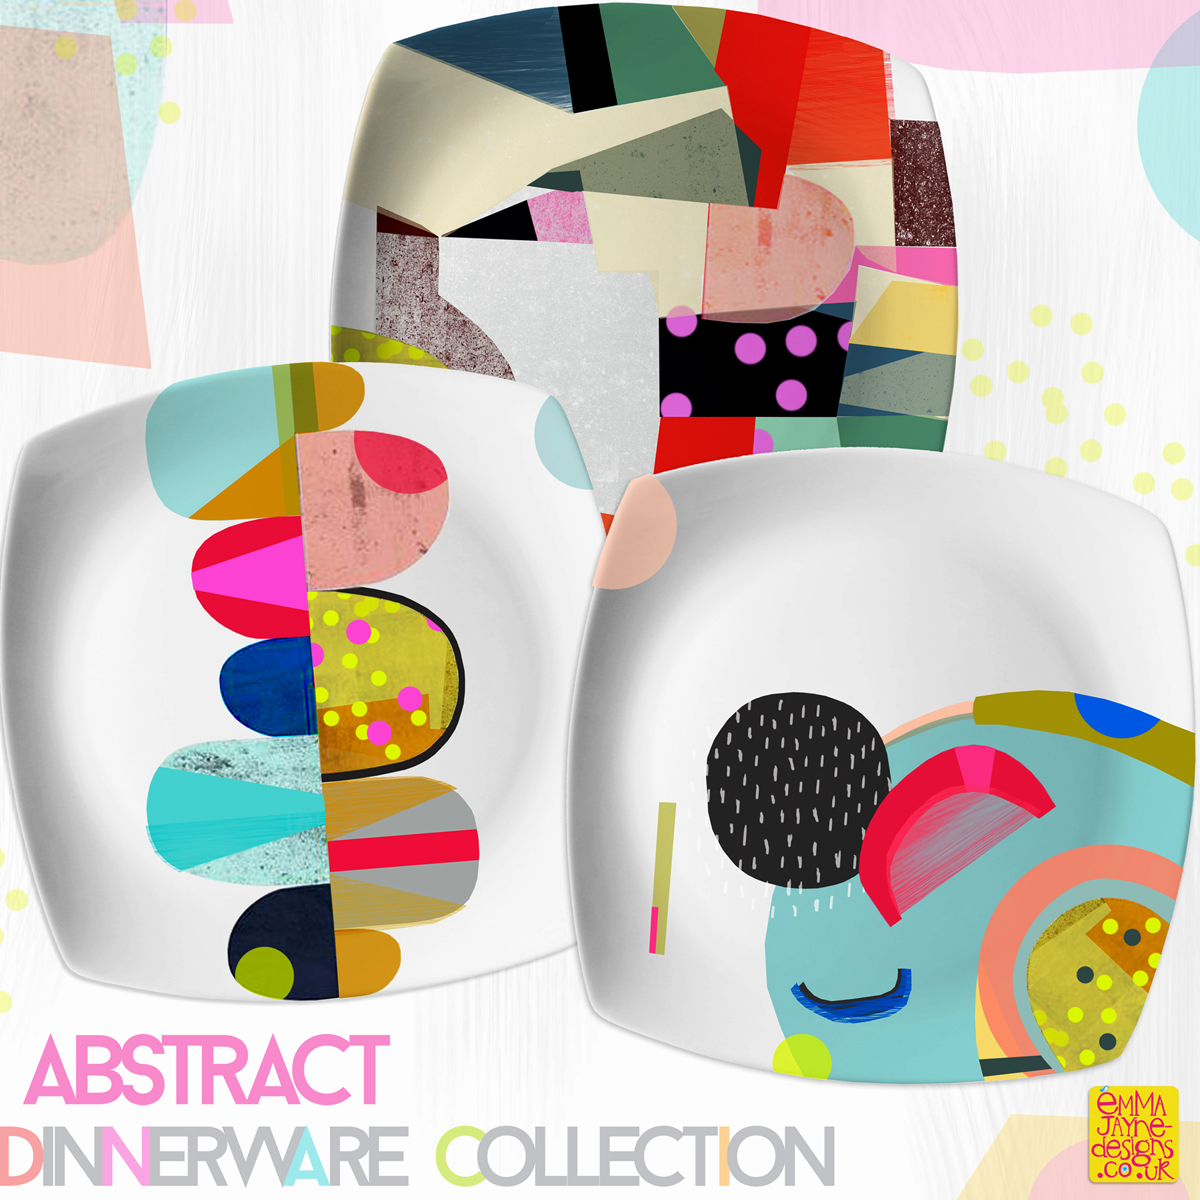 bright-abstract-dinnerware-collection-emmajayne-designs